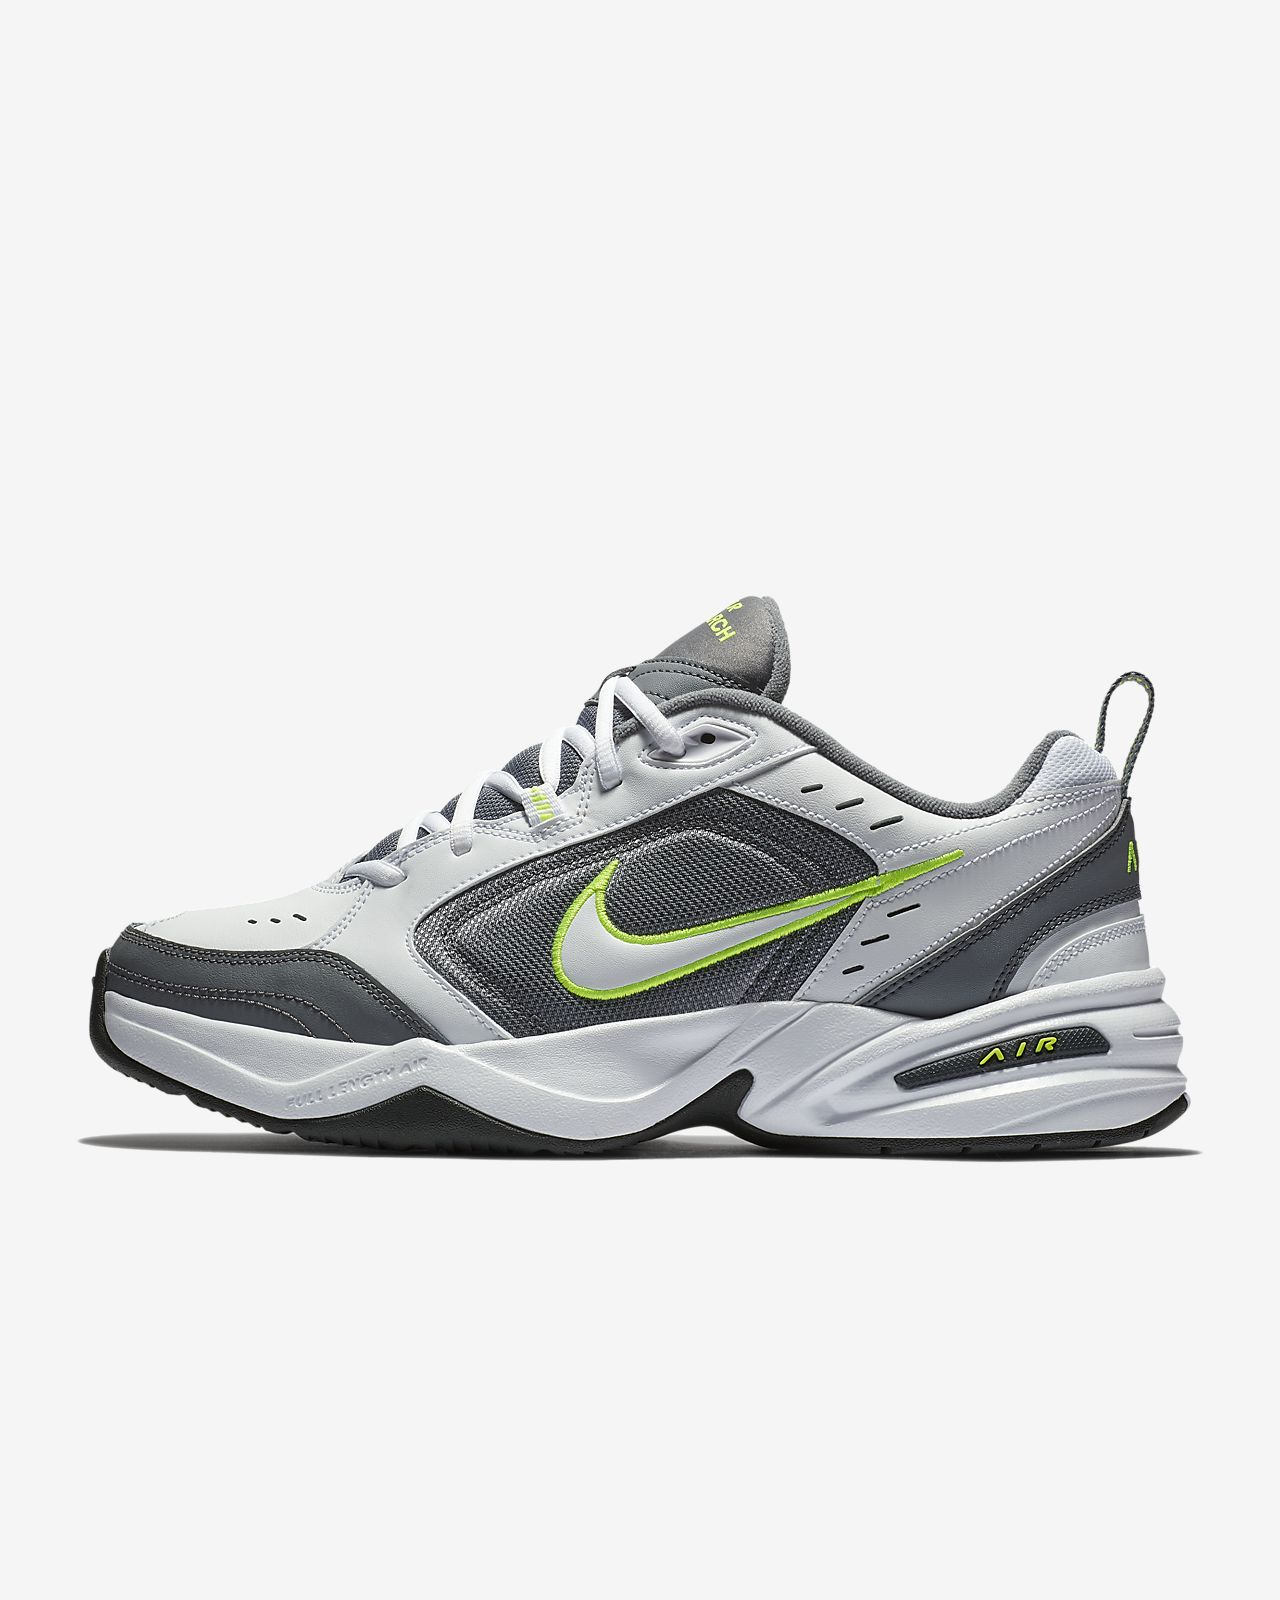 promo code 08577 9e5f0 Lifestyle Gym Shoe. Nike Air Monarch IV